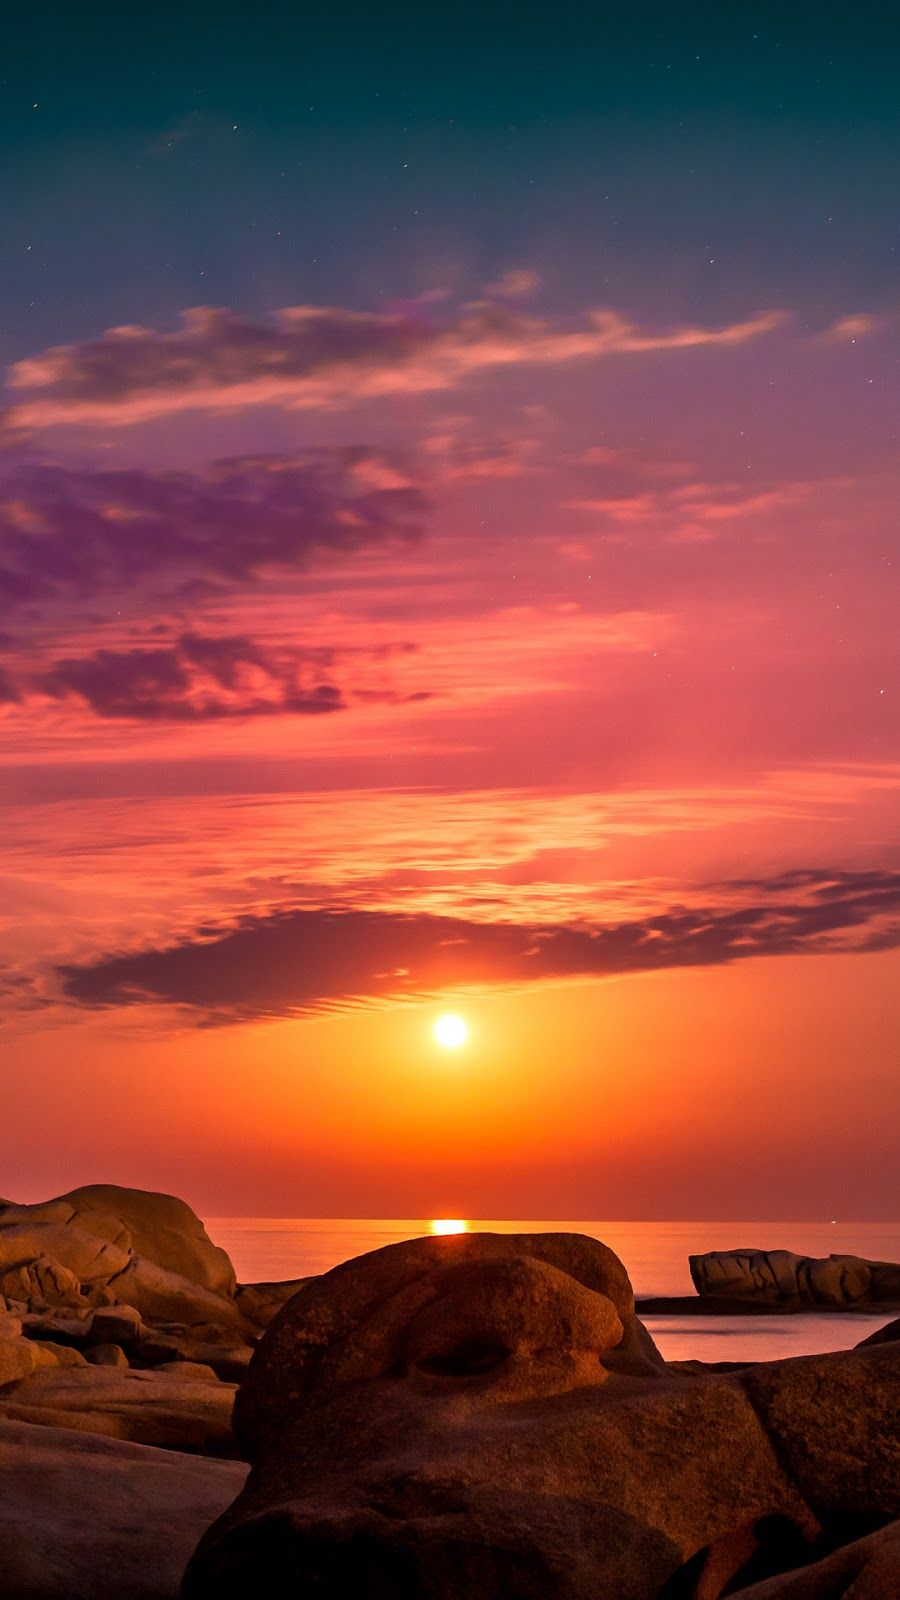 Sunset Wallpaper Iphone Android Background Followme Sunset Wallpaper Nature Wallpaper Sunset